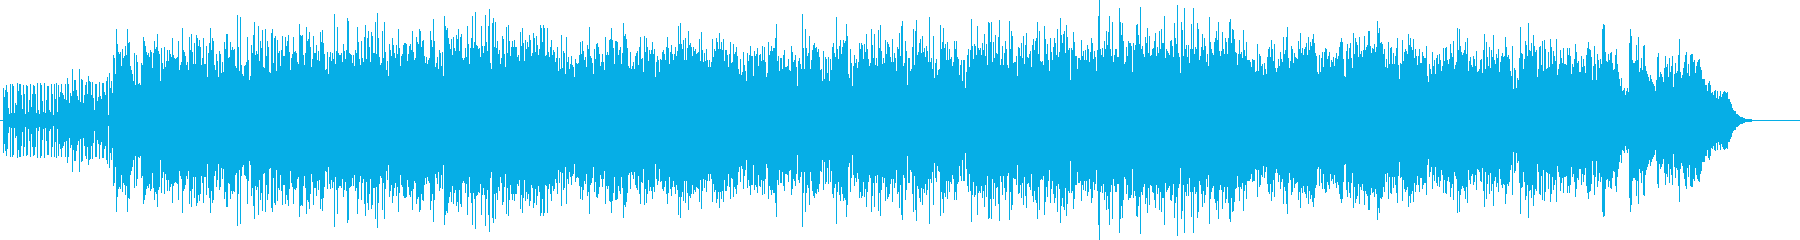 Electronic's reproduced waveform